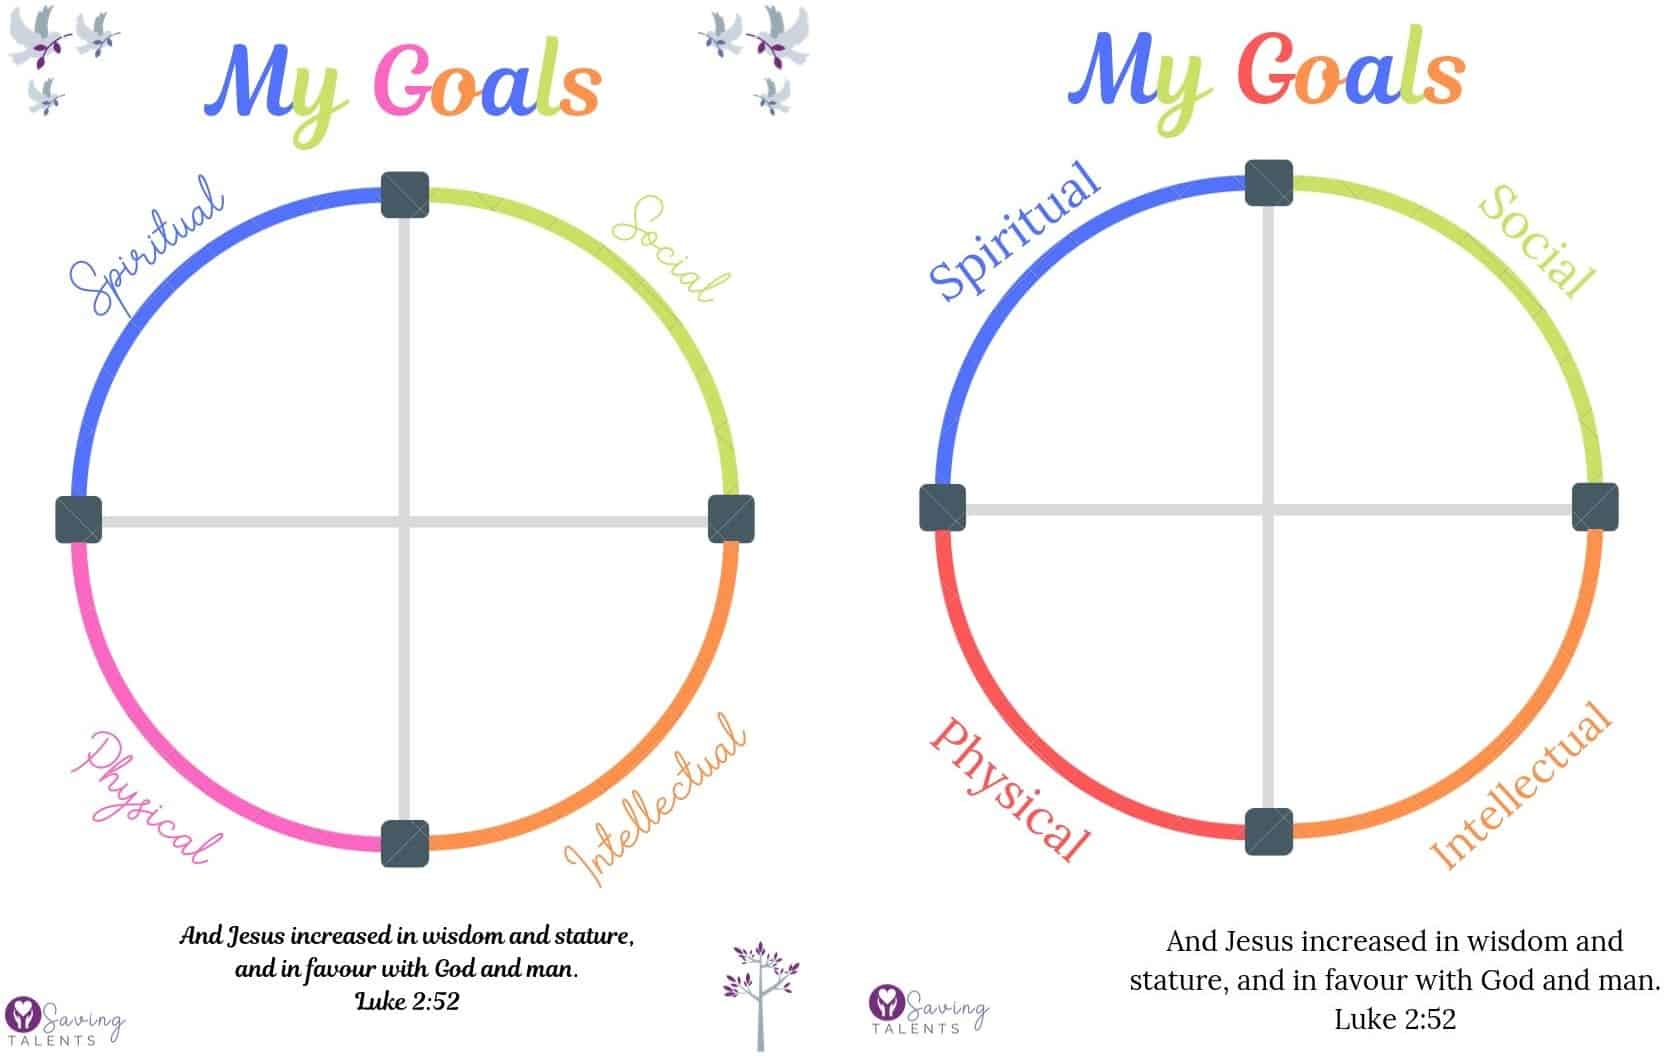 How to Set Goals for Growth as Jesus Did